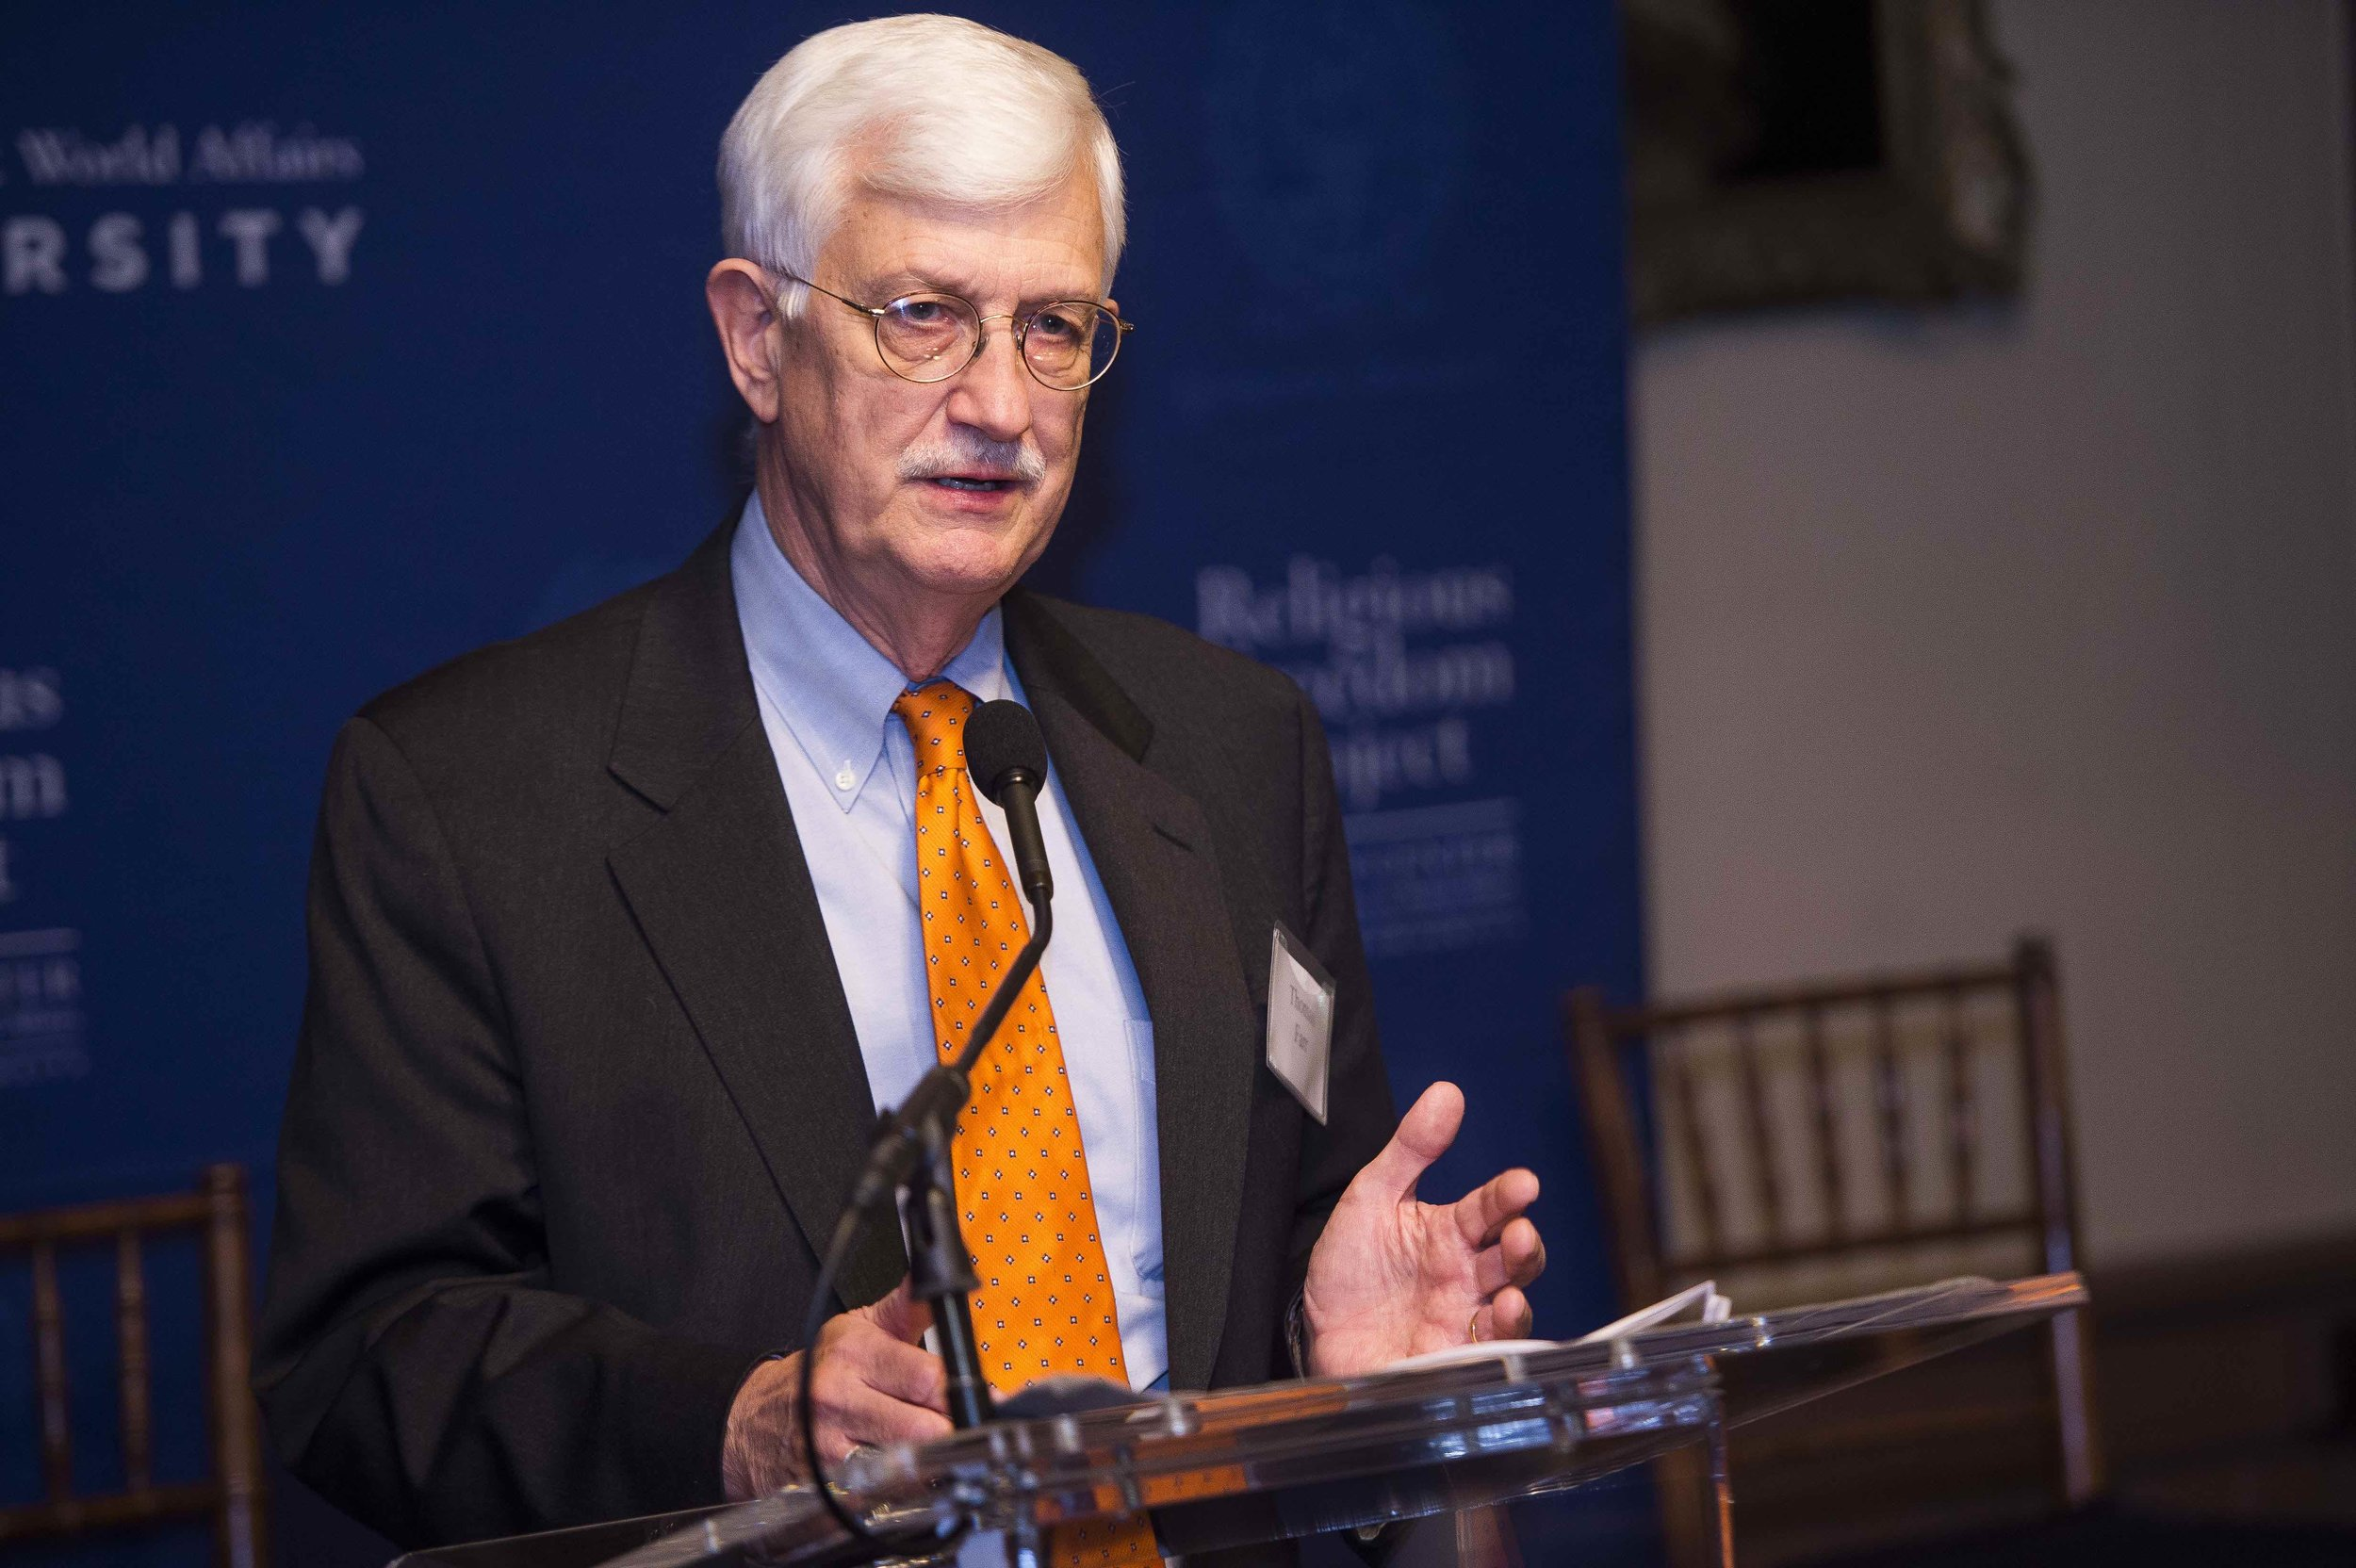 Thomas Farr, President, Religious Freedom Institute and Director, Religious Freedom Project